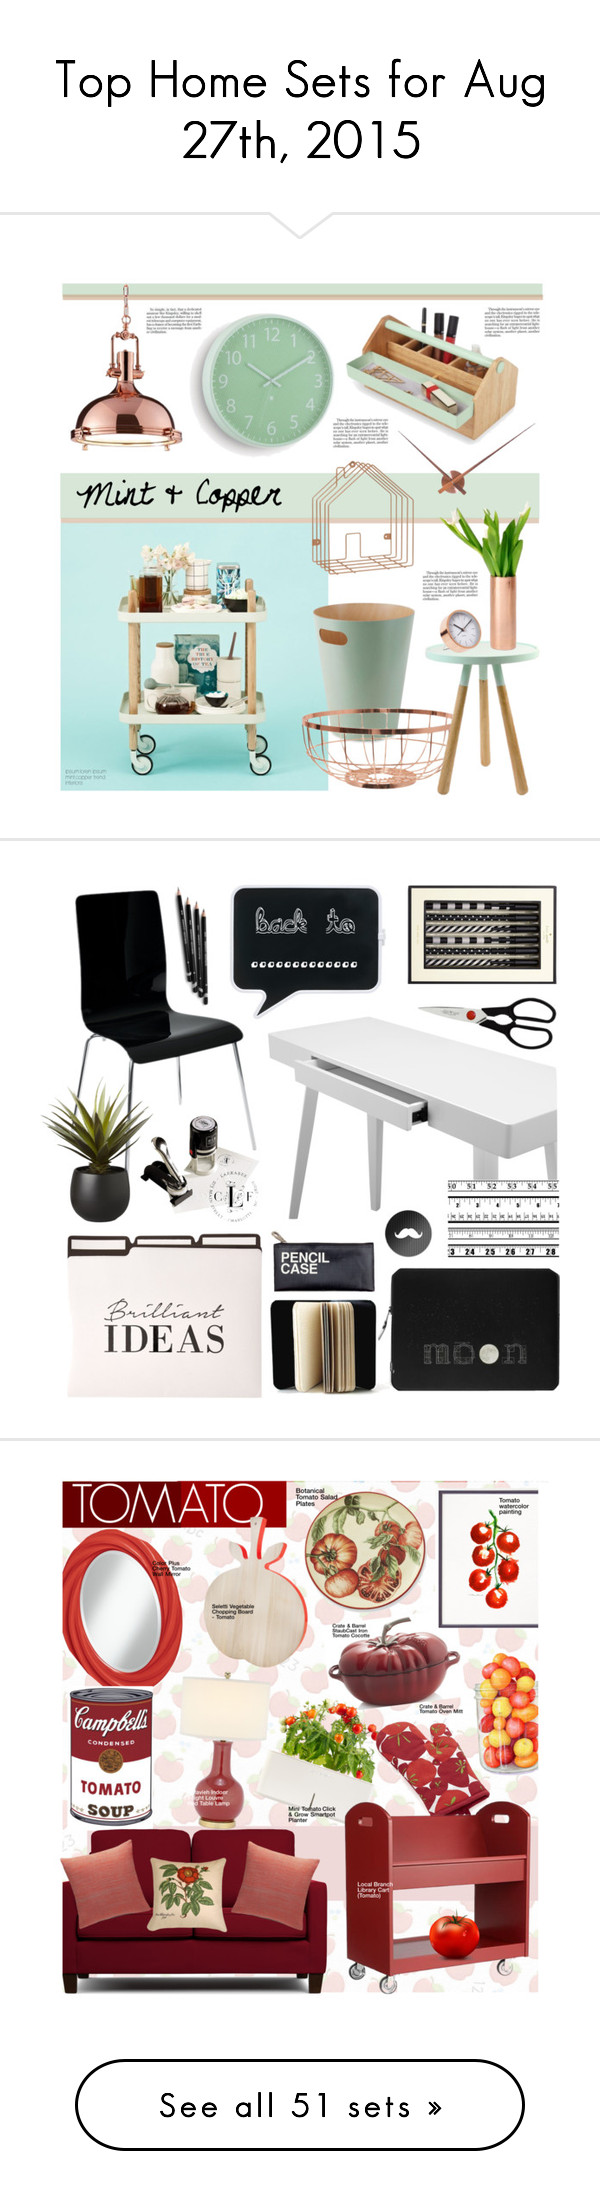 """""""Top Home Sets for Aug 27th, 2015"""" by polyvore ❤ liked on Polyvore featuring interior, interiors, interior design, home, home decor, interior decorating, Normann Copenhagen, Umbra, Karlsson and Kate Spade"""